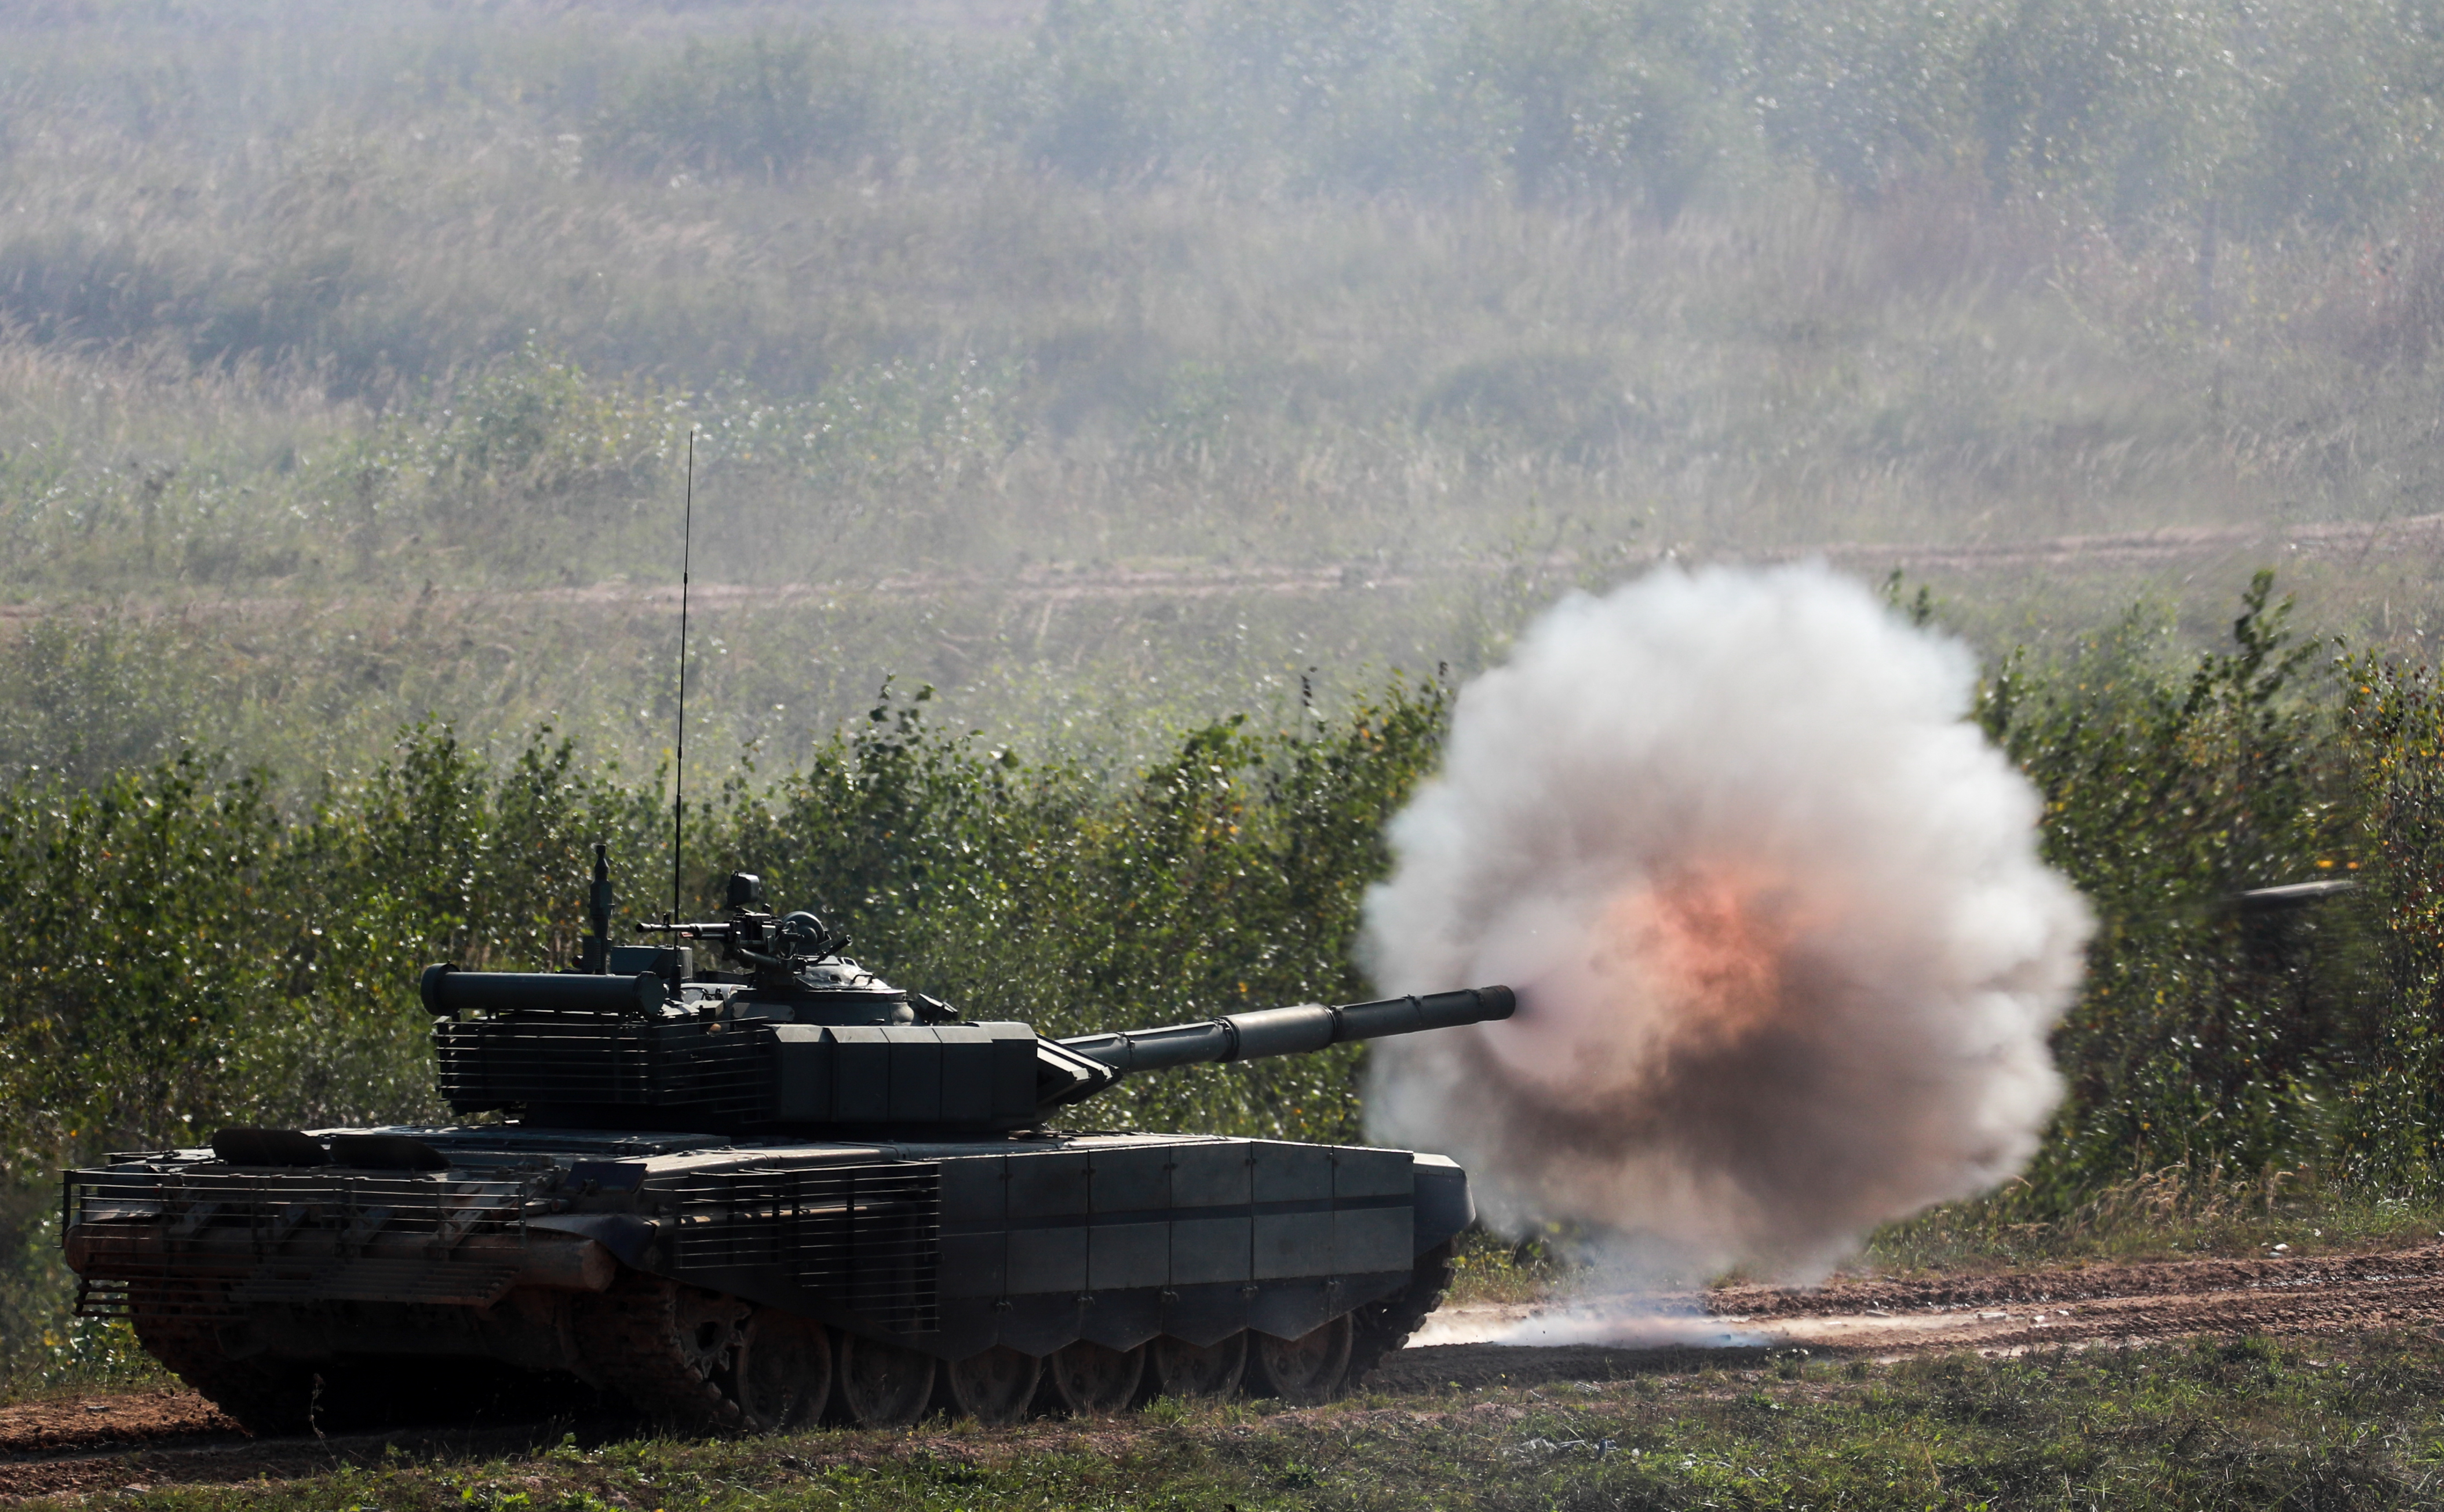 Military equipment put on display at 2021 International Army Games